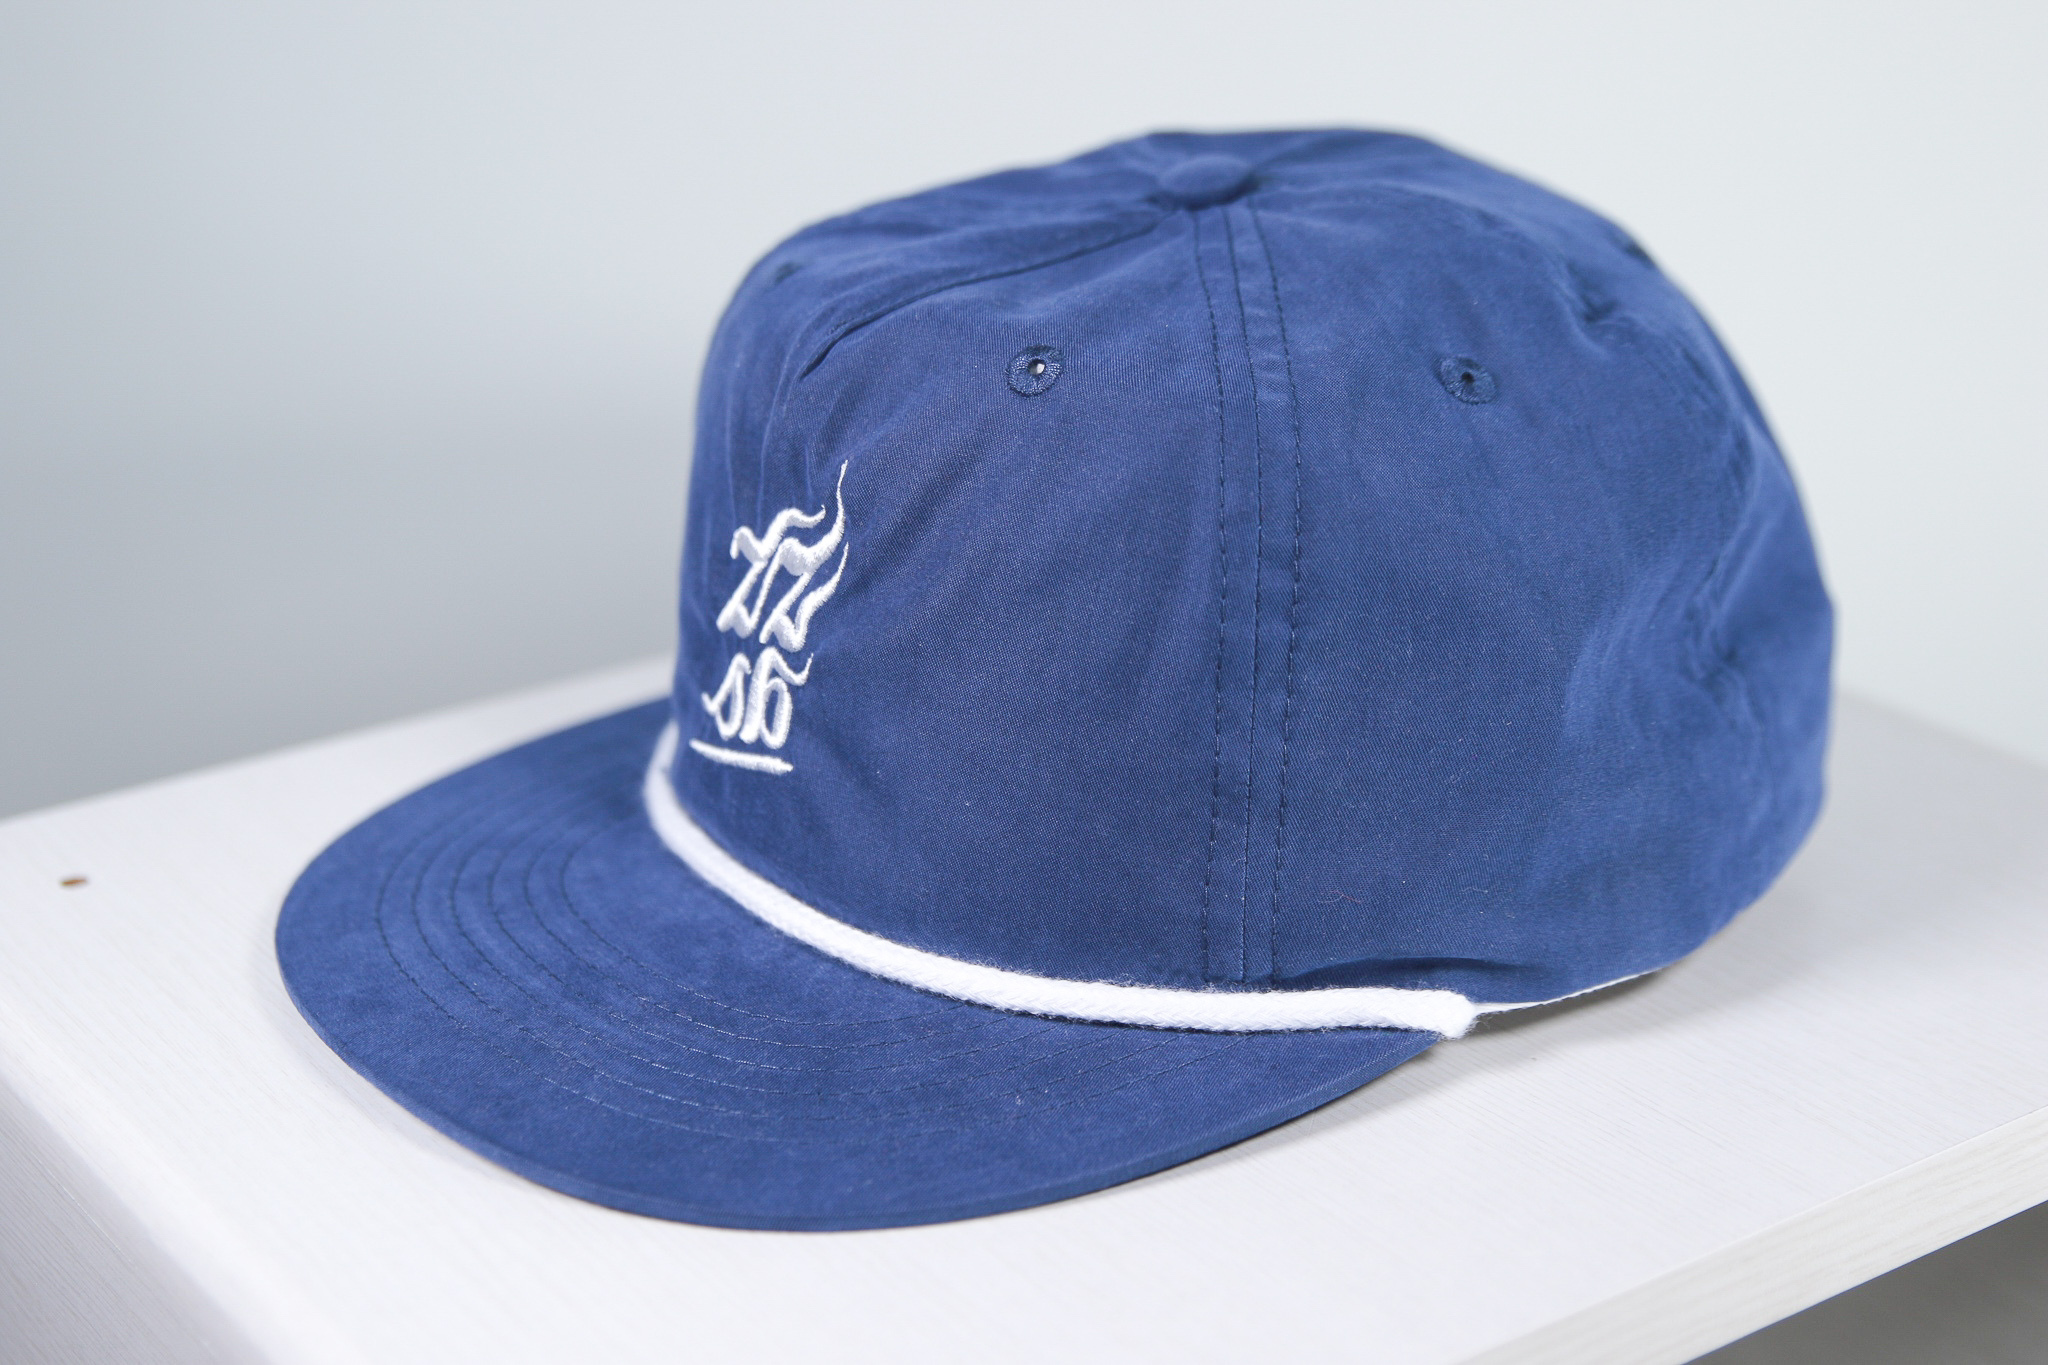 ZZSB CALI 5 PANEL NYLON CAP [BLUE]